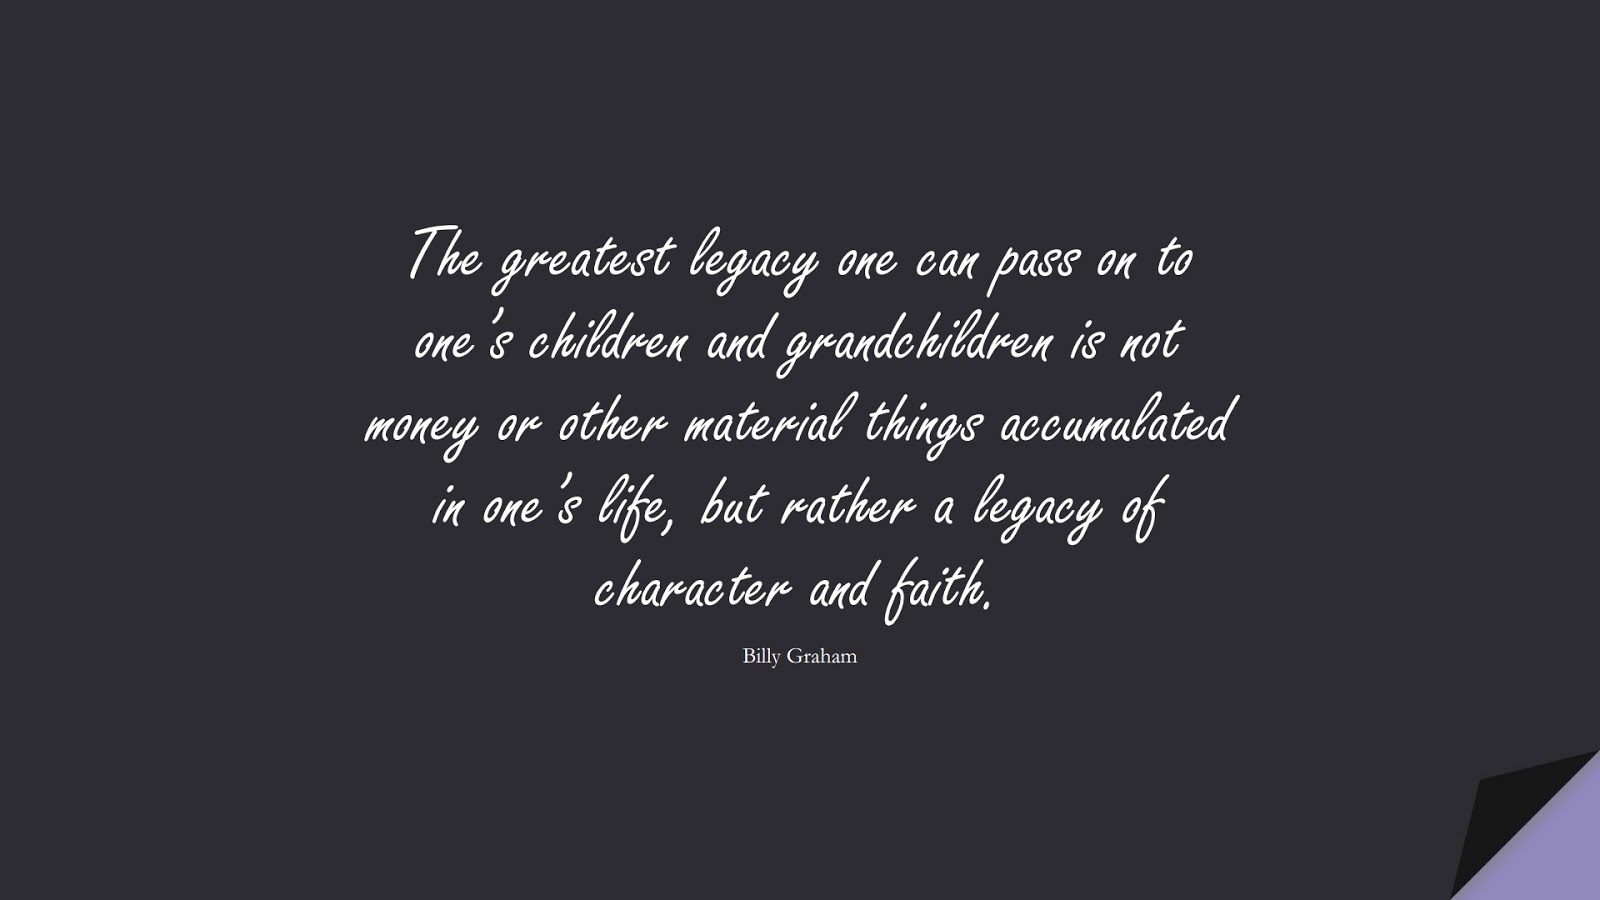 The greatest legacy one can pass on to one's children and grandchildren is not money or other material things accumulated in one's life, but rather a legacy of character and faith. (Billy Graham);  #FamilyQuotes